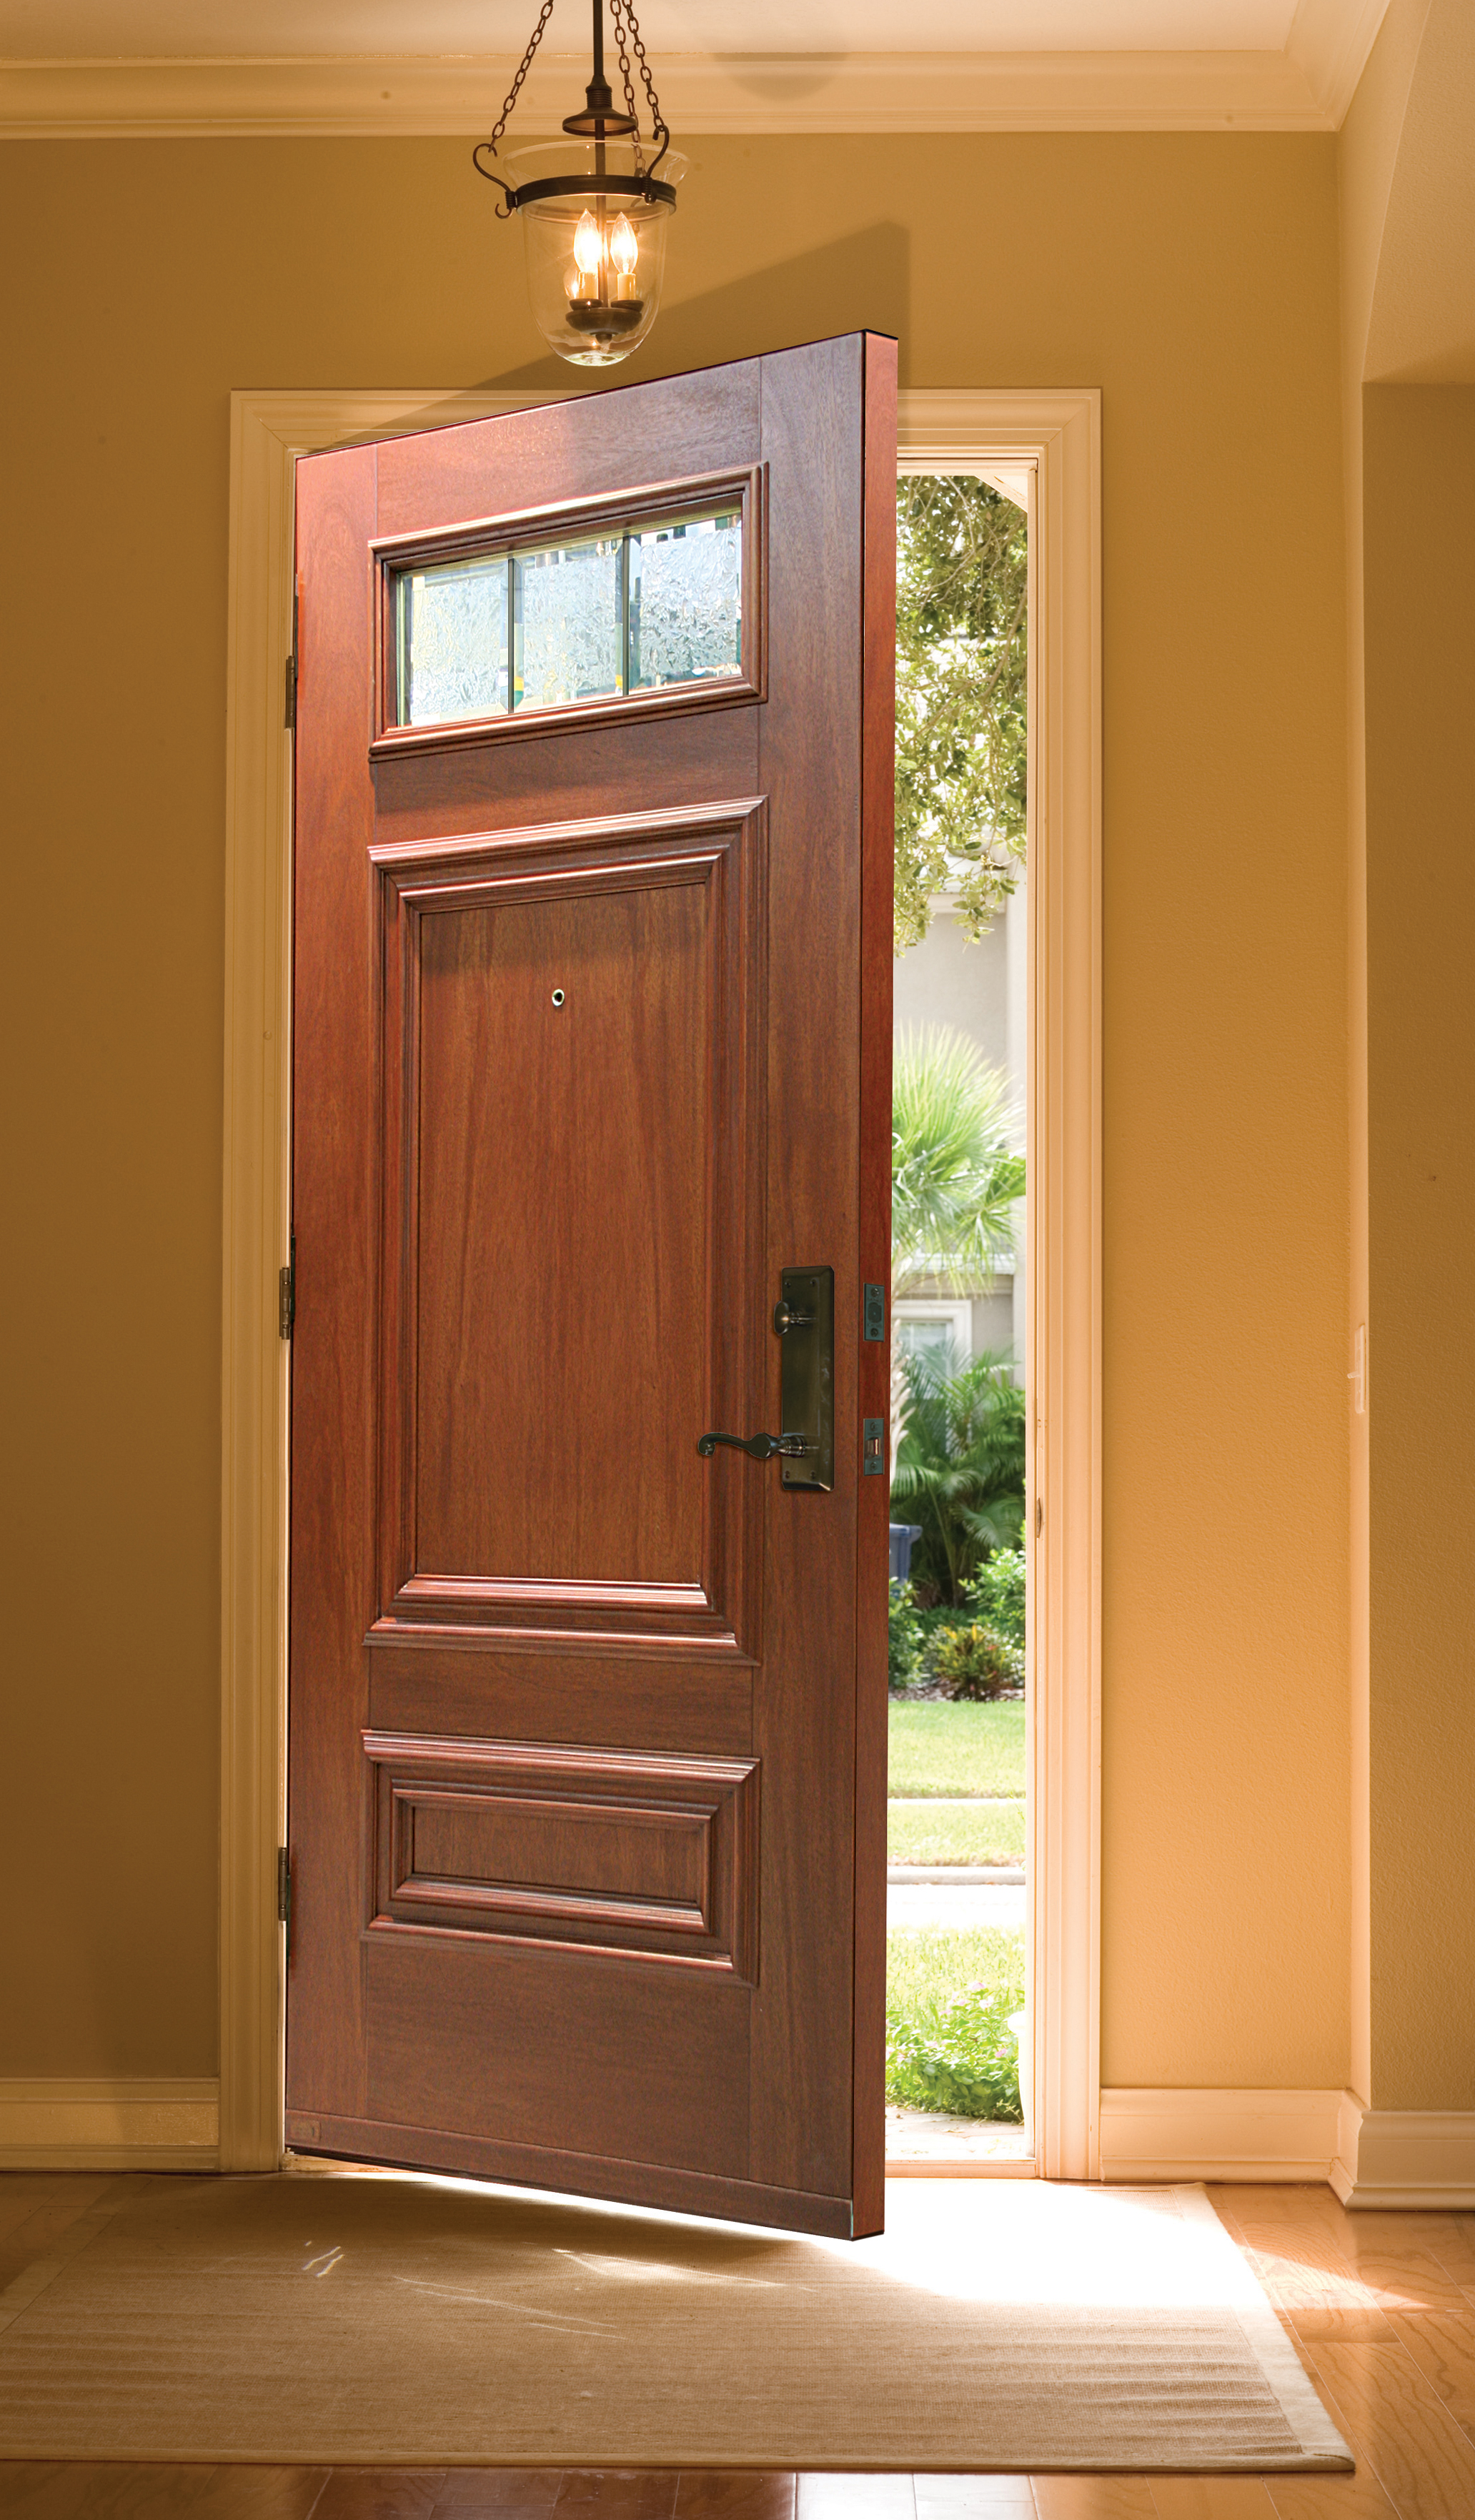 Porte simple avec finition de bois int rieure cerisier for Porte fenetre d interieur